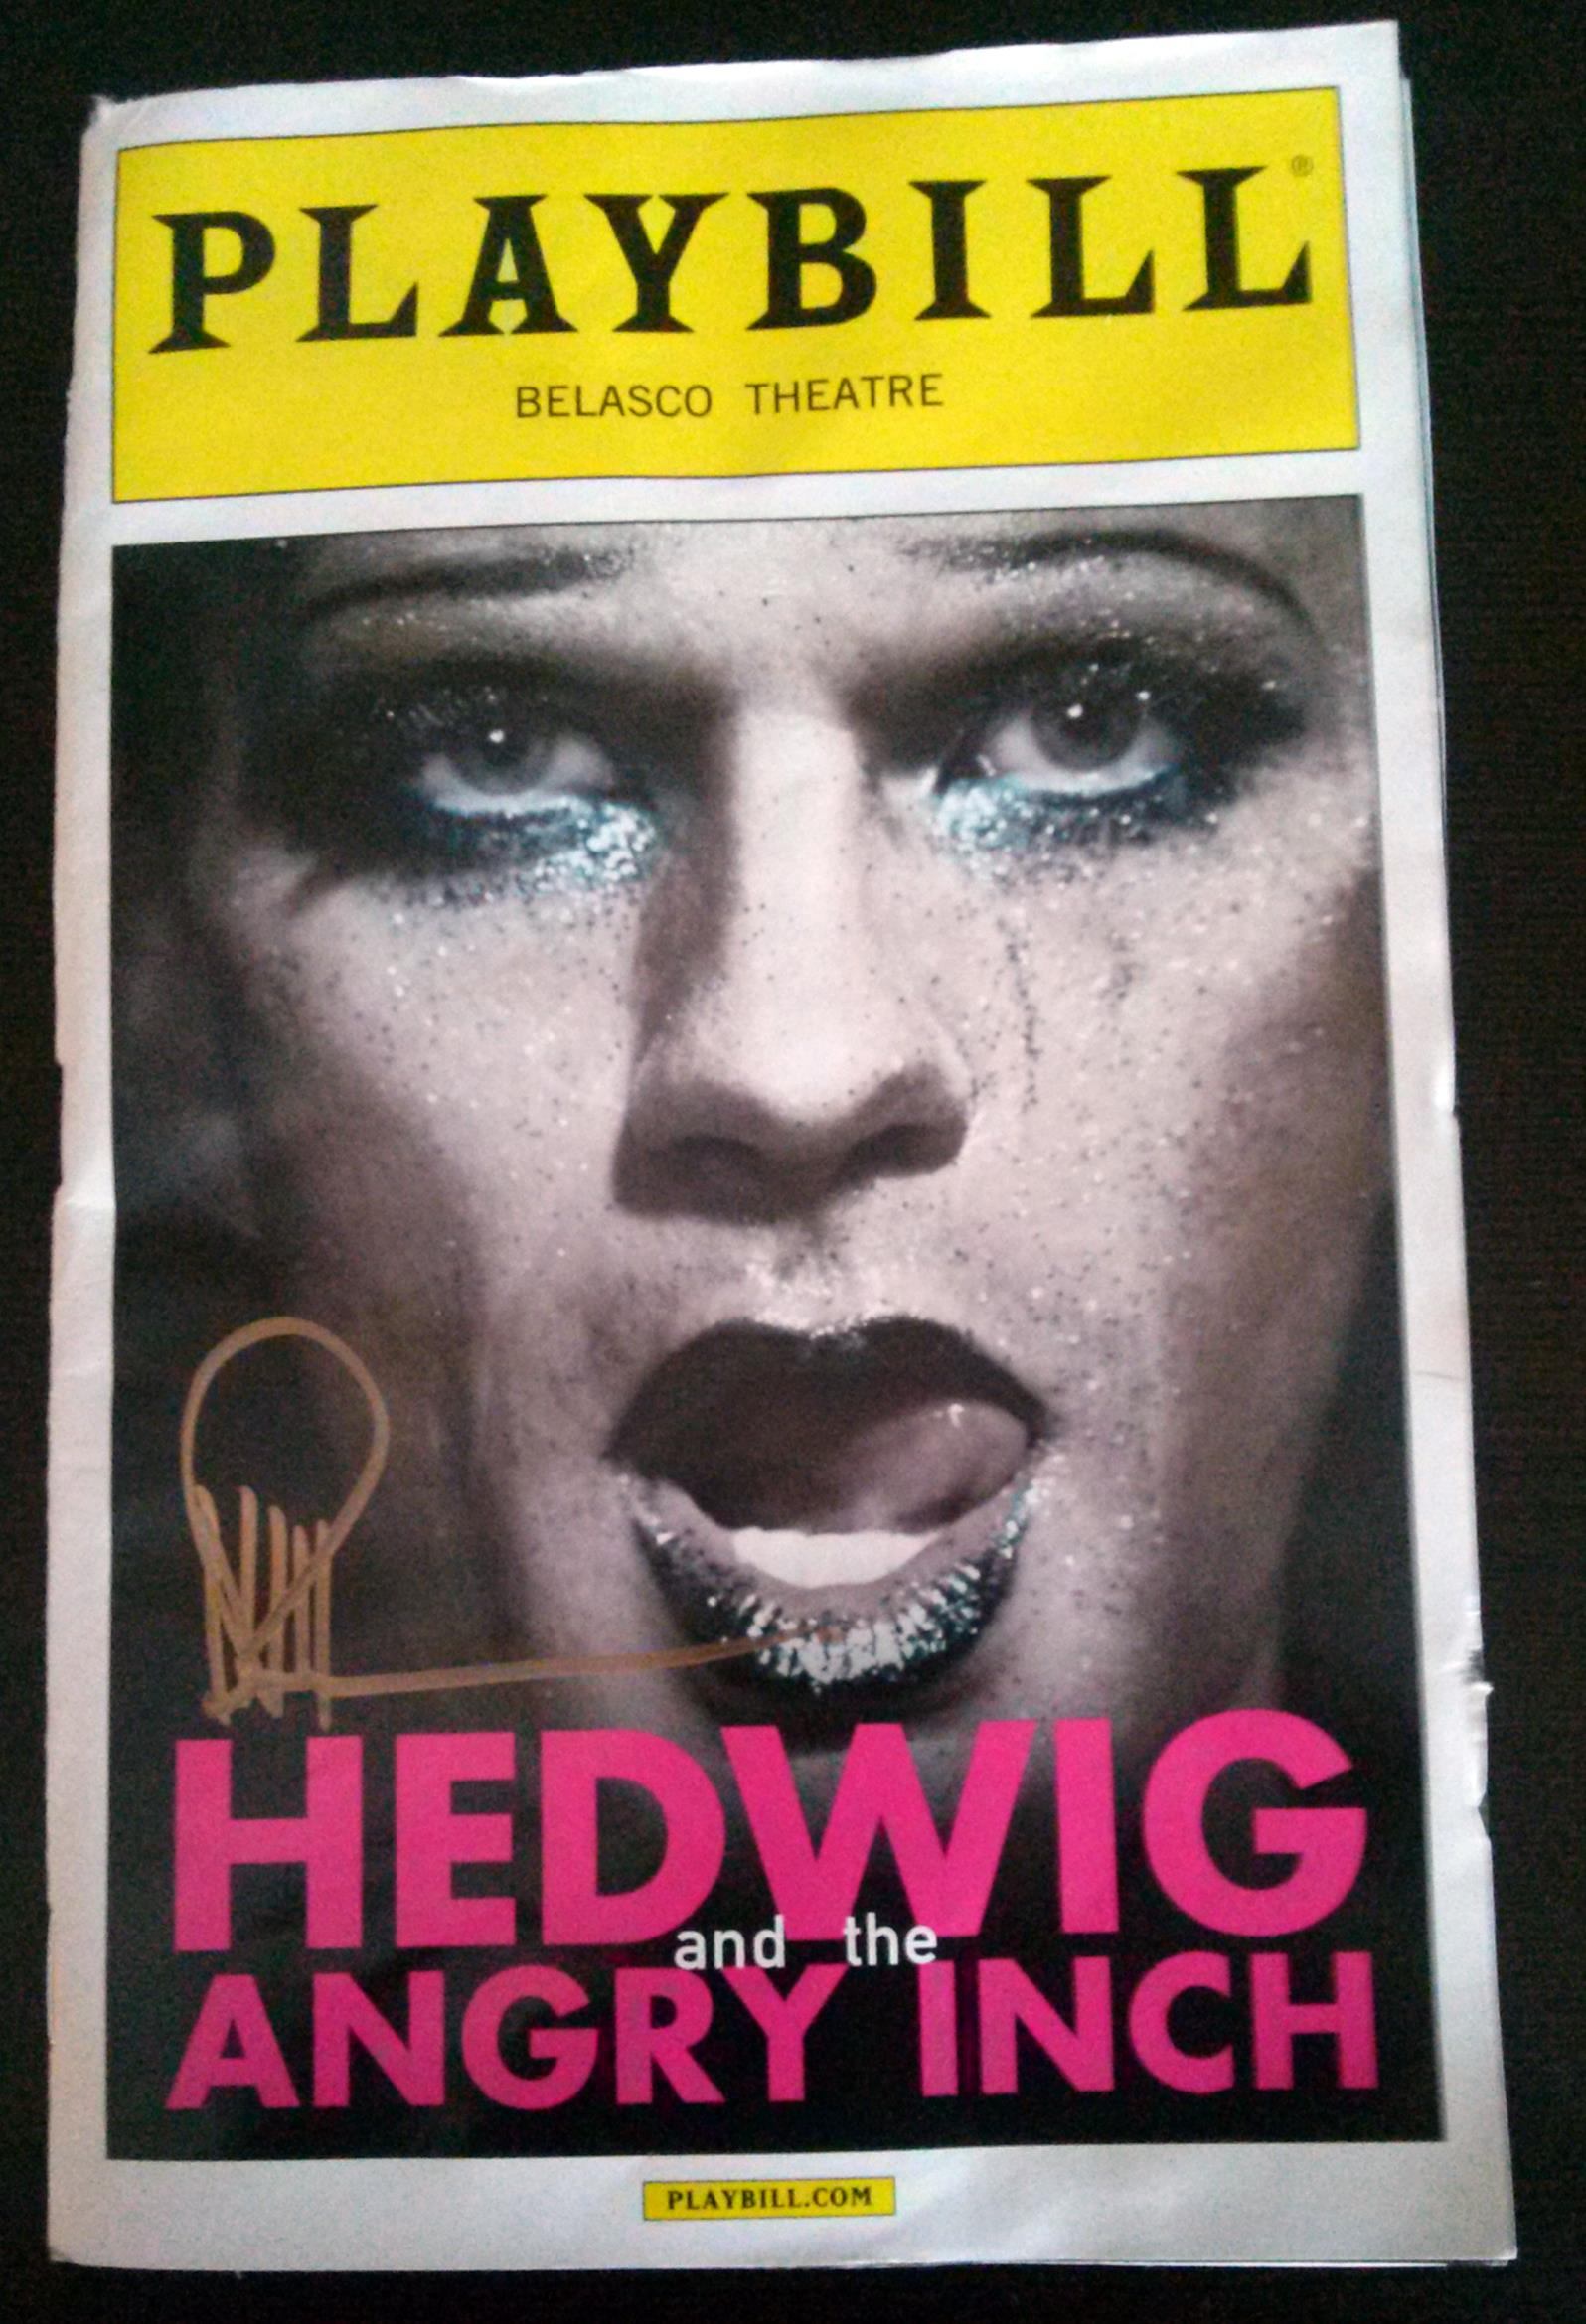 hedwig and the angry inch essay Hedwig and the angry inch plot summary, character breakdowns, context and analysis, and performance video clips.